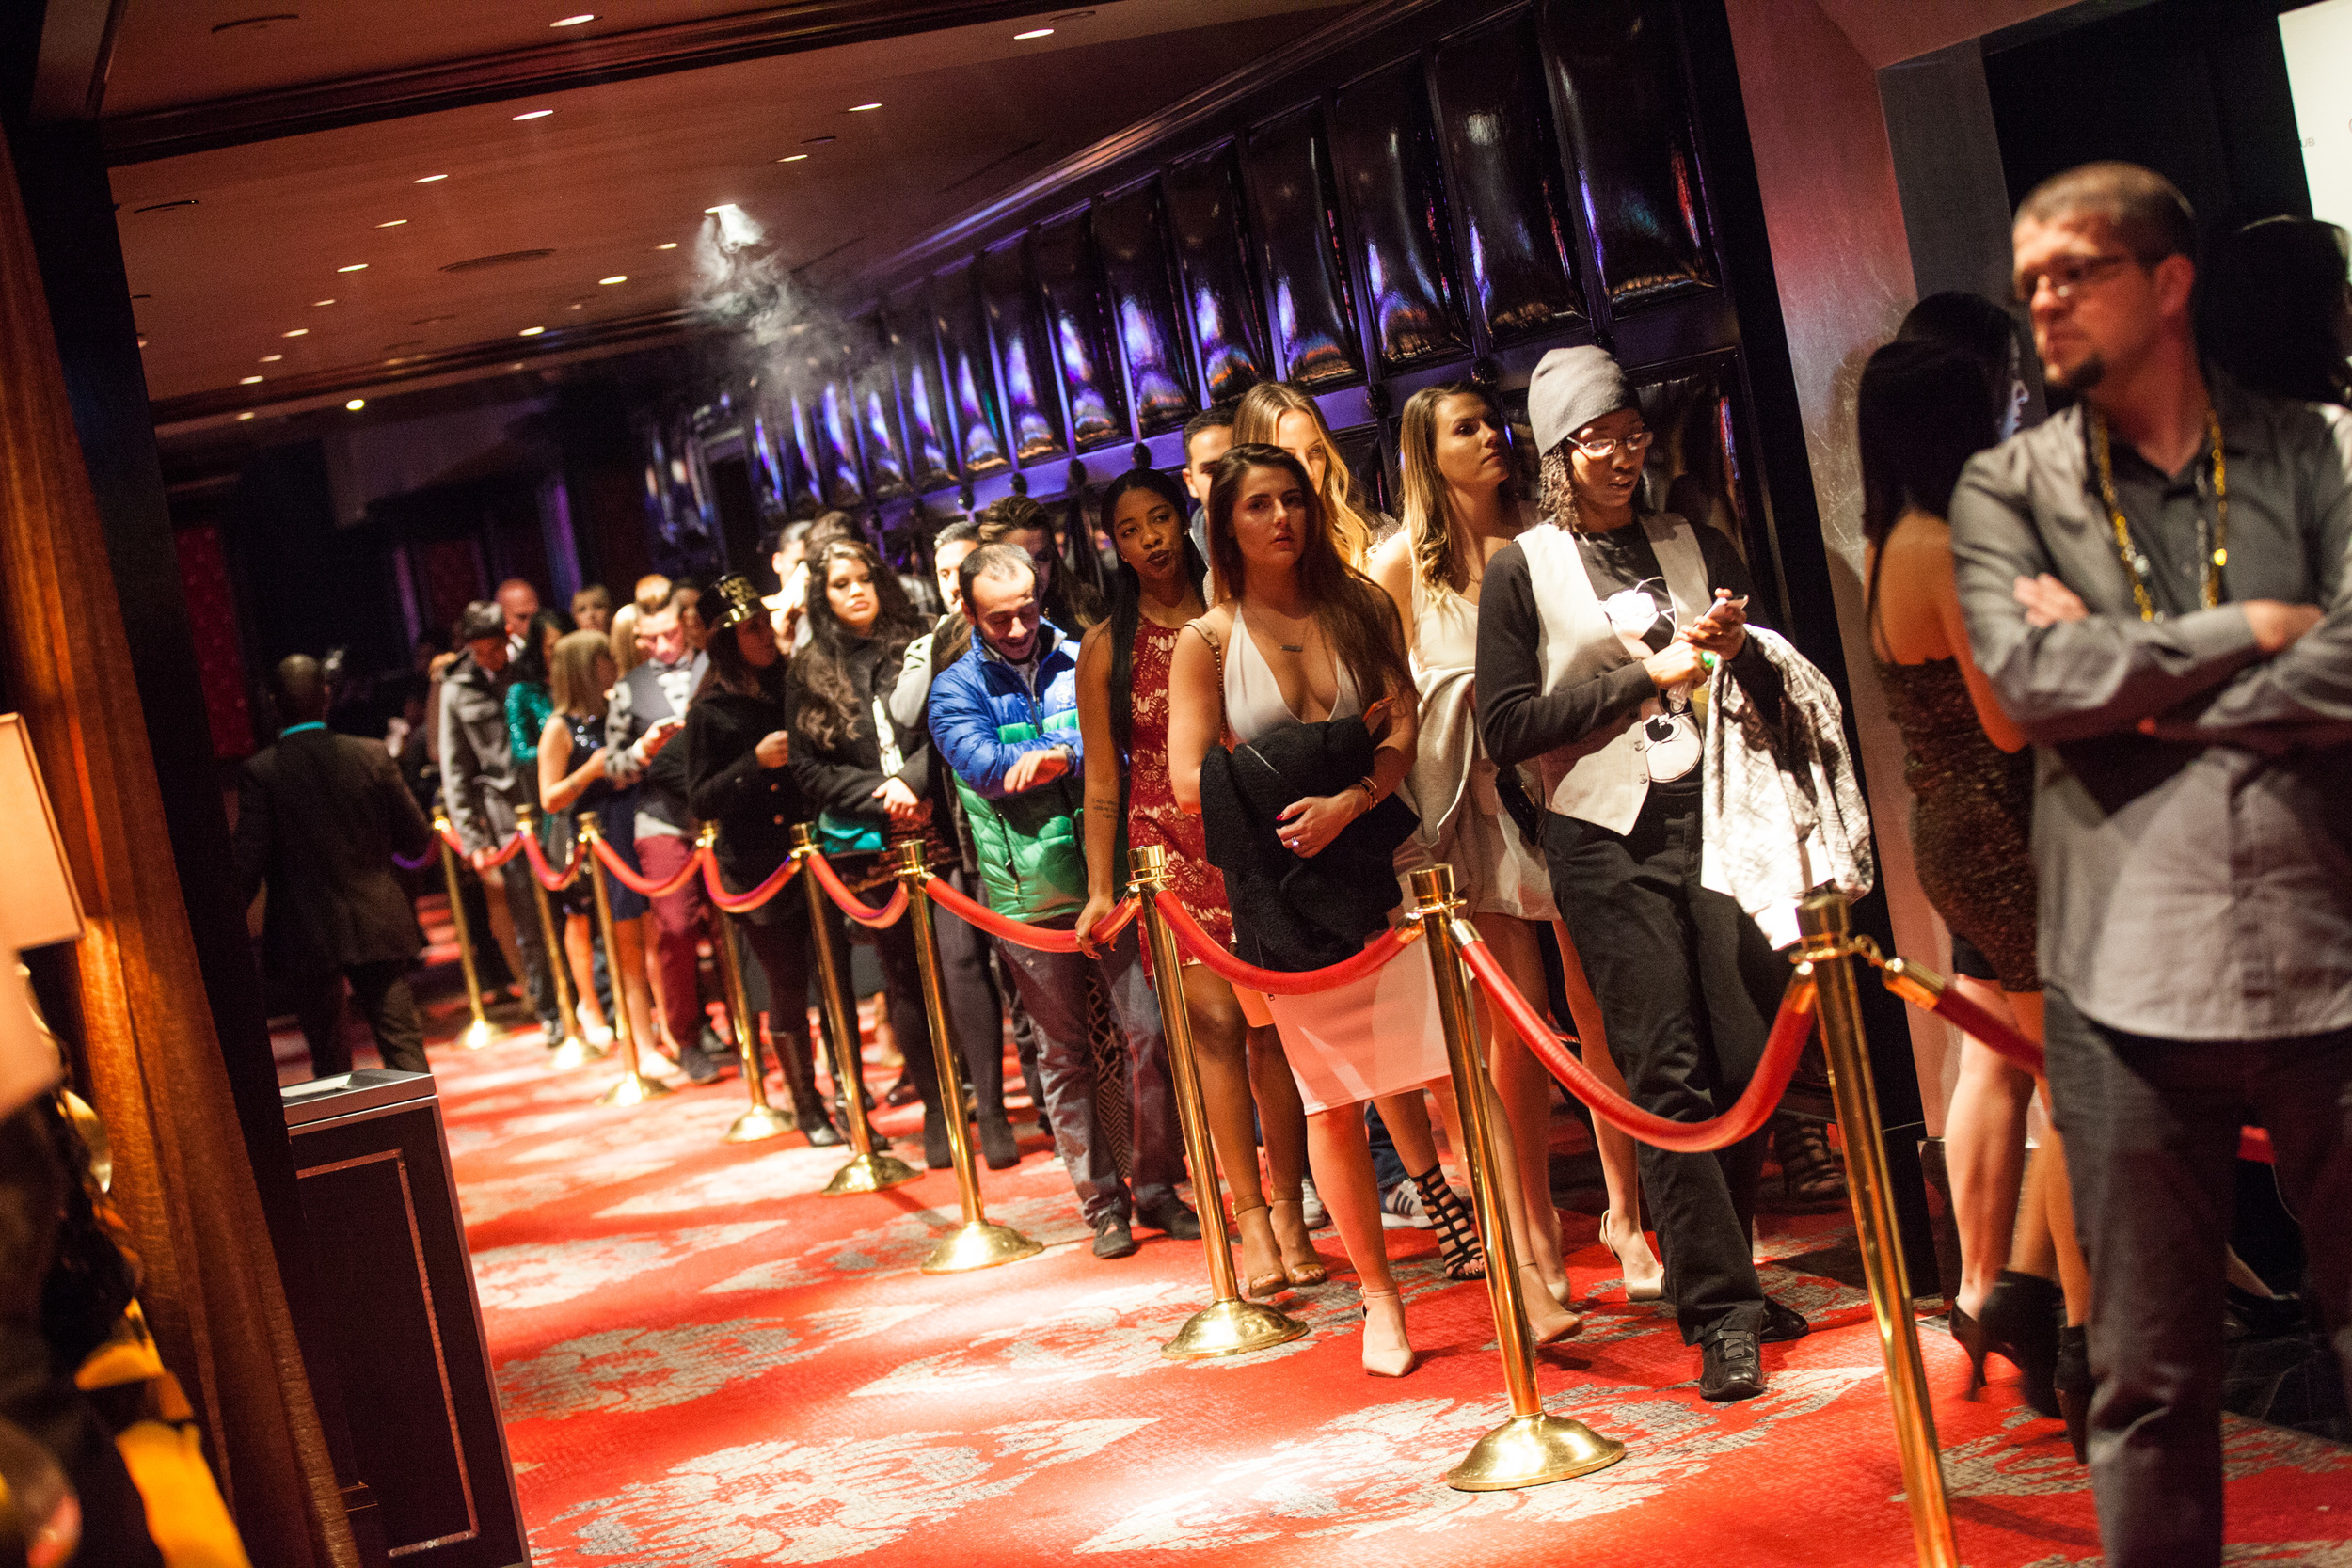 VIP does not alwaysmean missing the long lines. Using Vegaster Does!